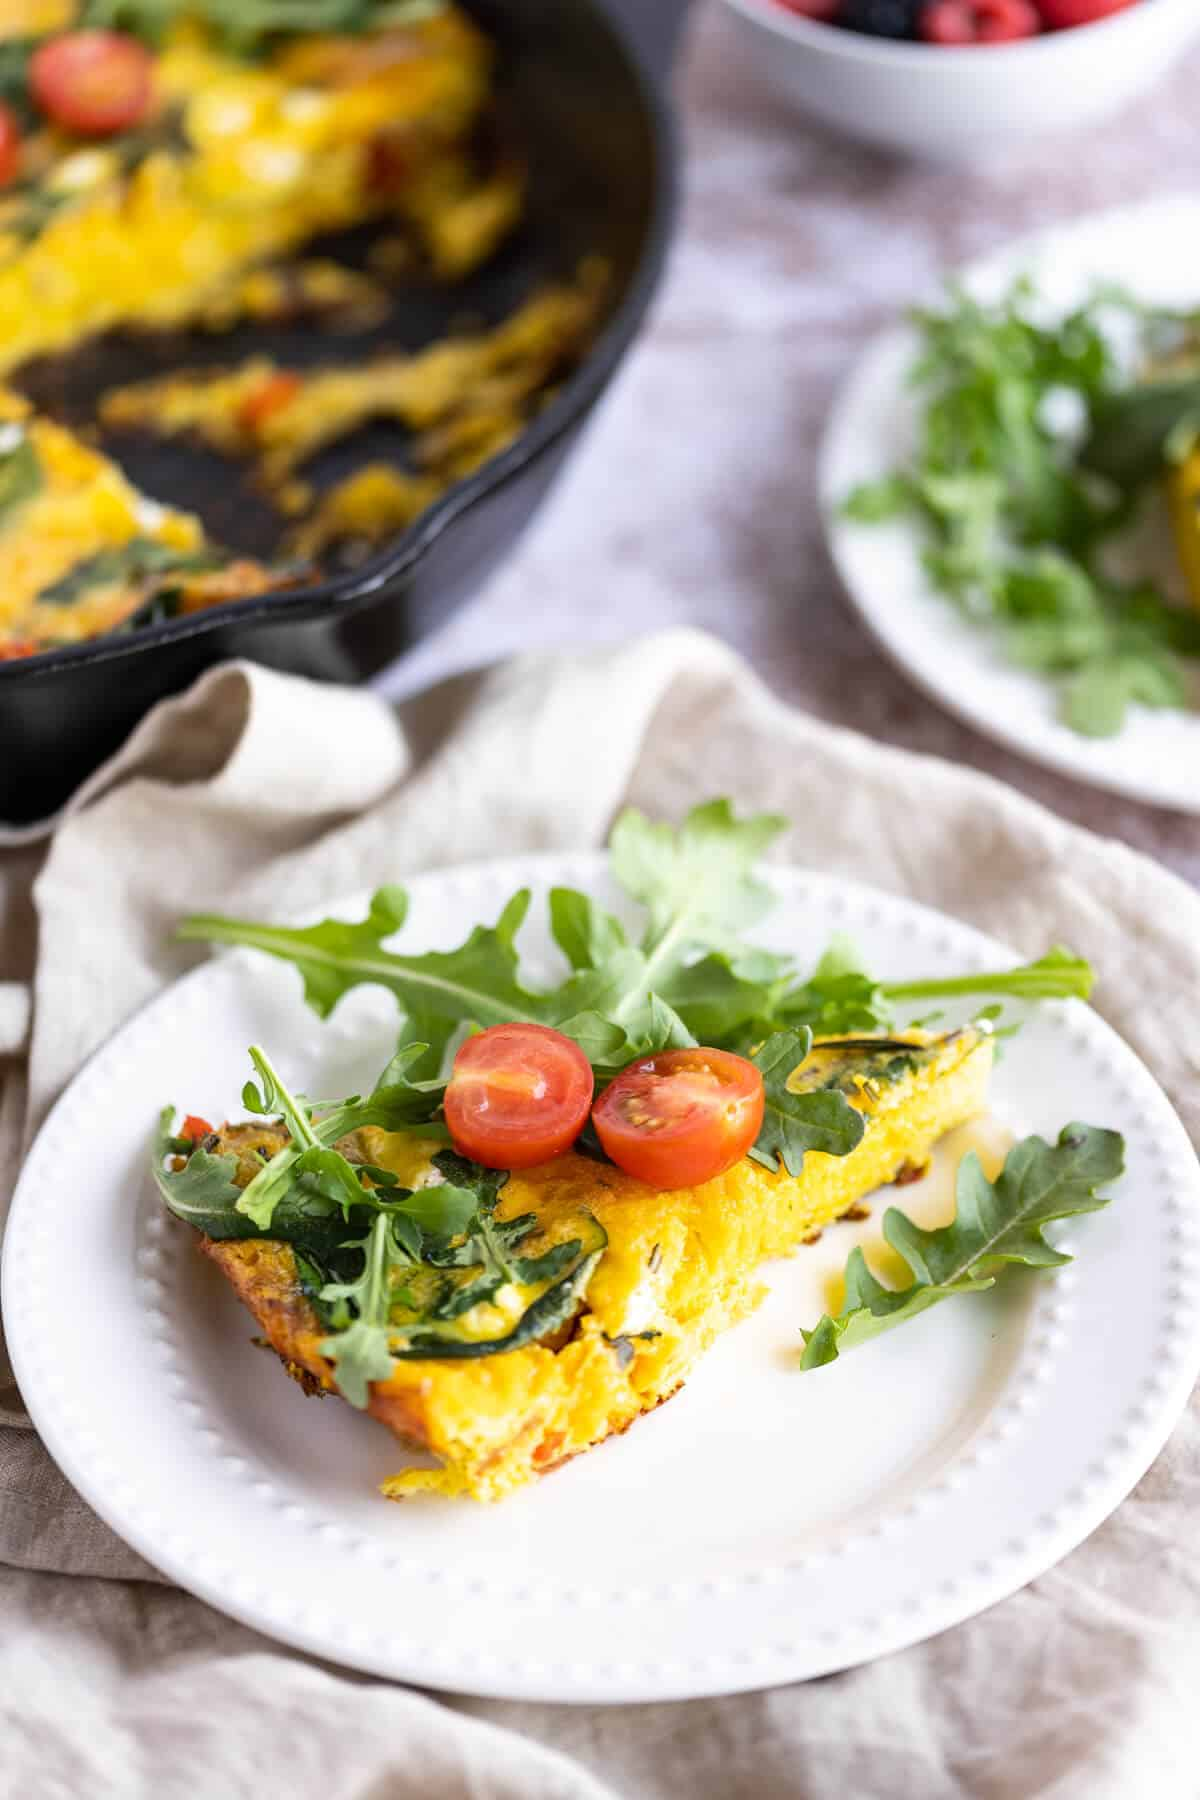 slice of a frittata on a white plate garnished with arugula